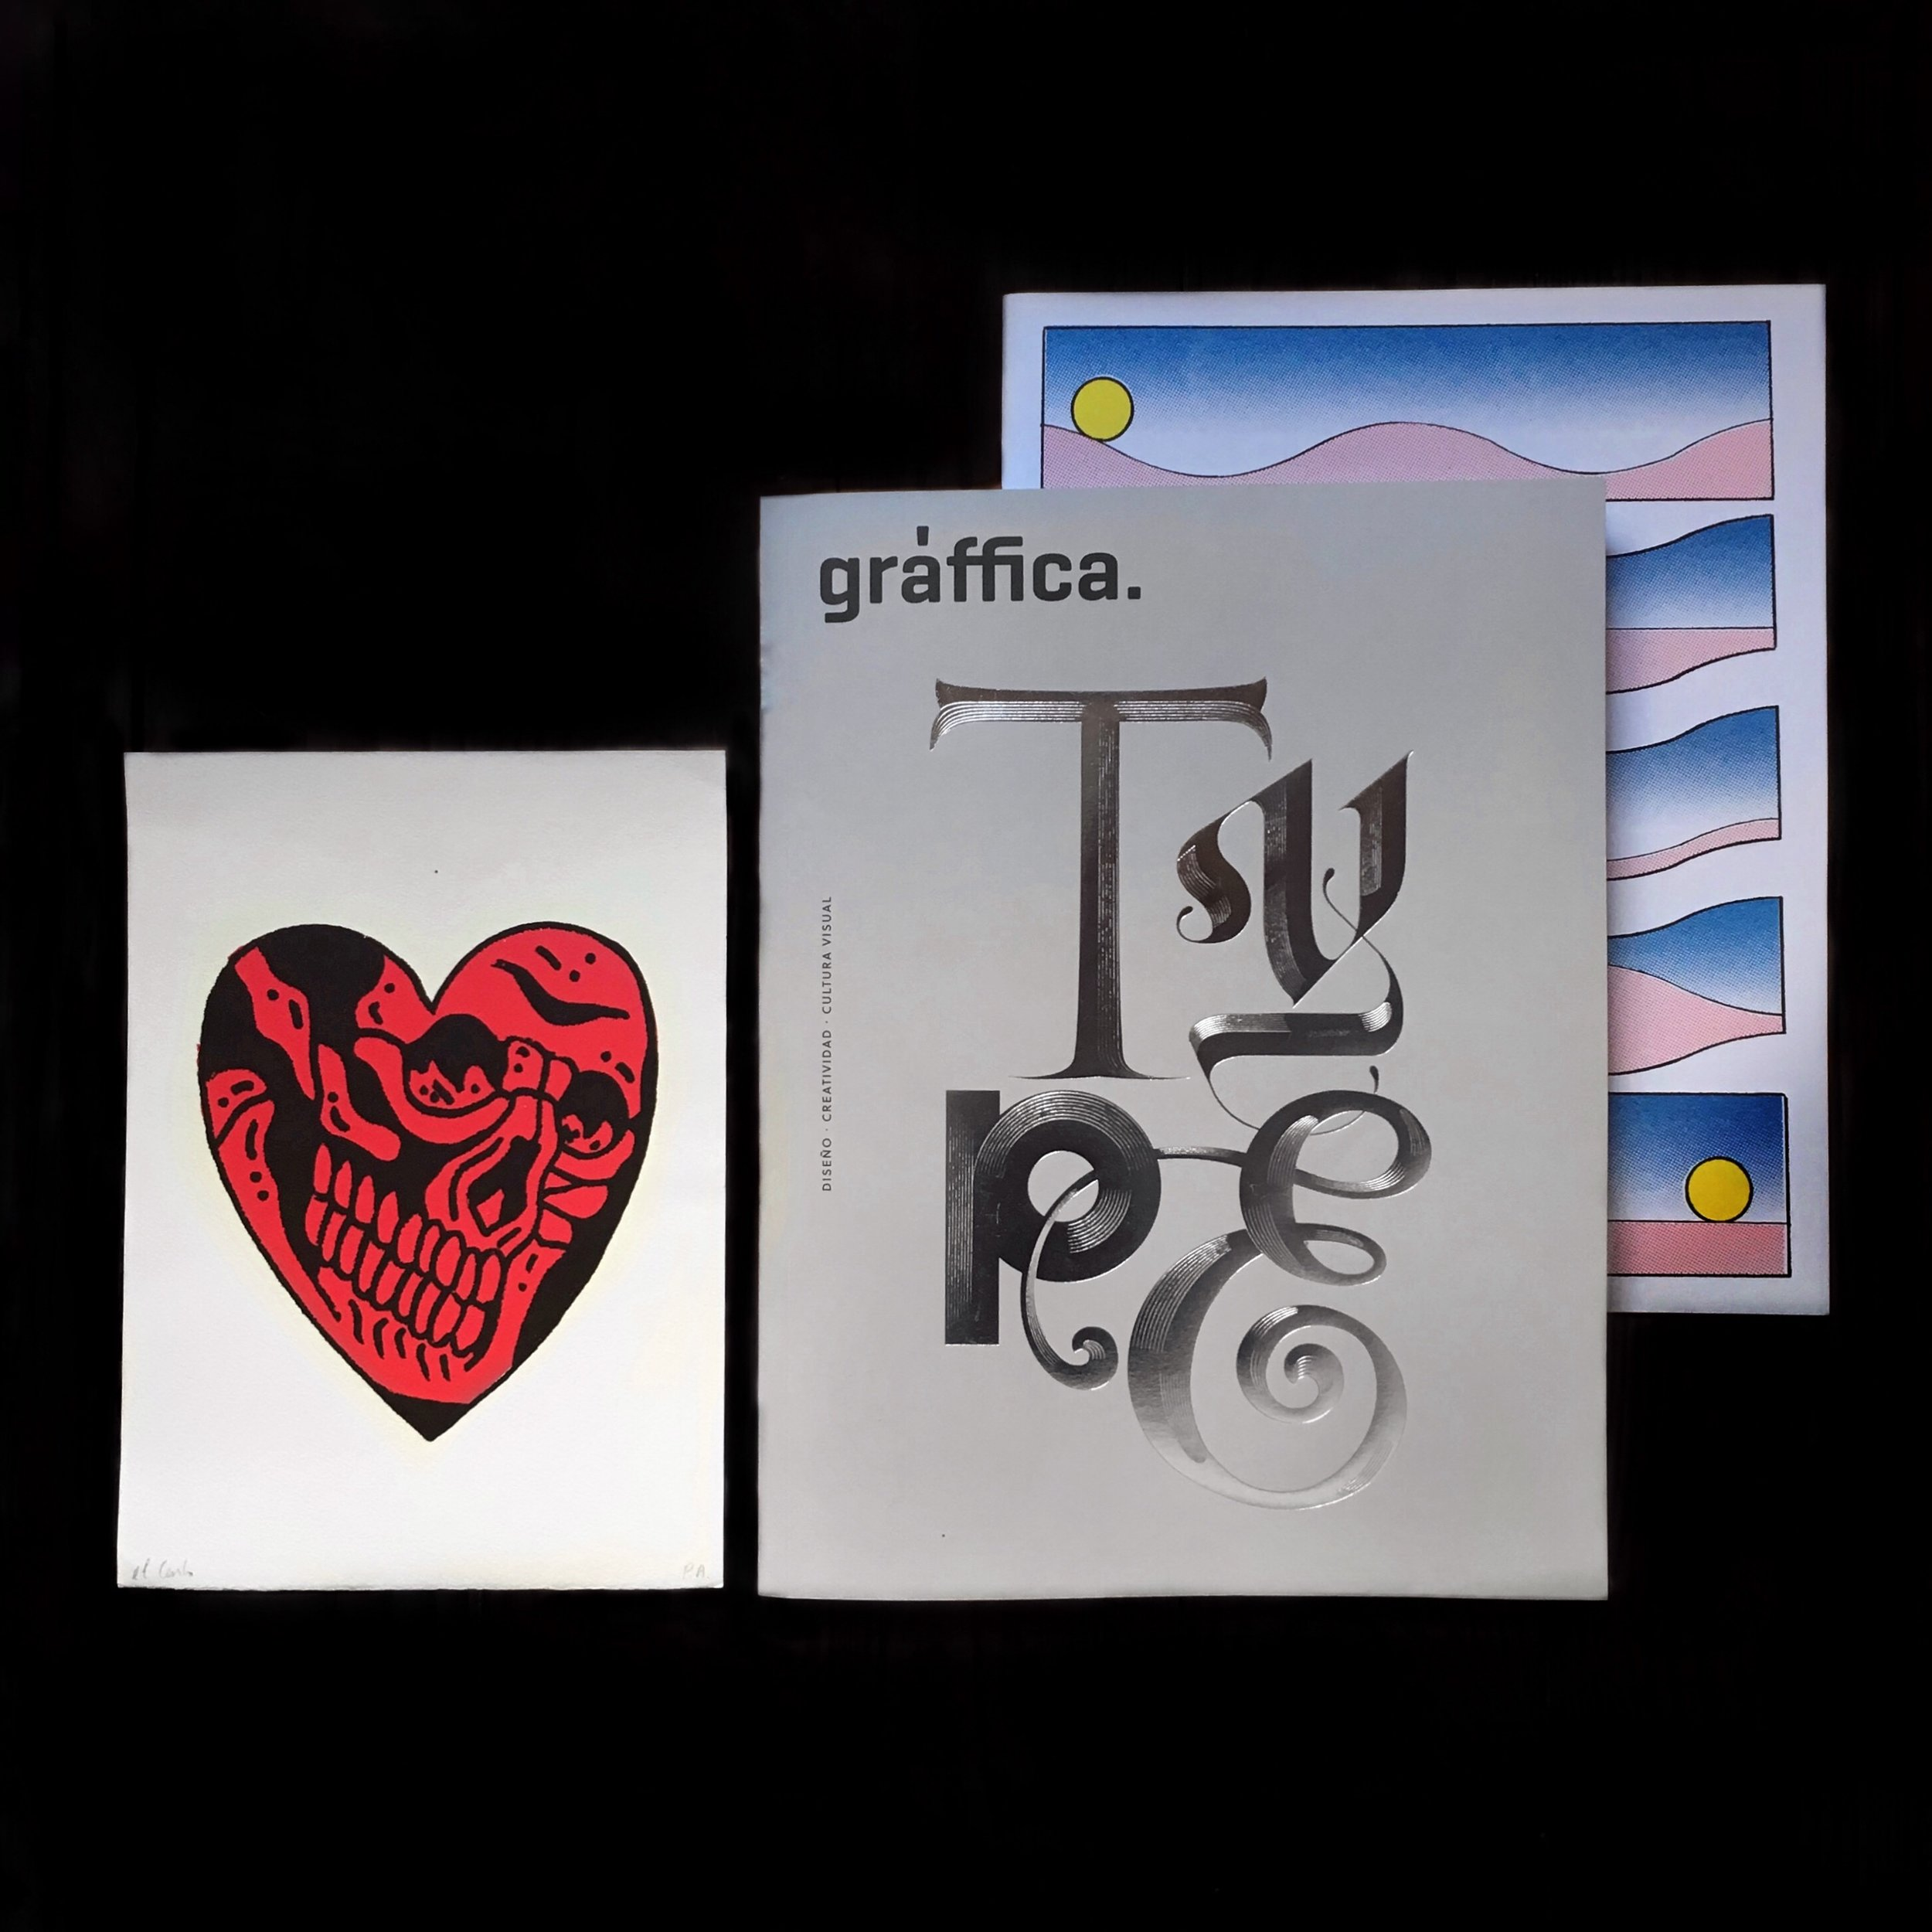 Haul from  Fat Bottom Books  and  Laie , [From left to right] Heart Screen Print by  El Carlo Tattoos ,  Gràffica  Tipografía Issue,  Relatives  by  Antoine Orand